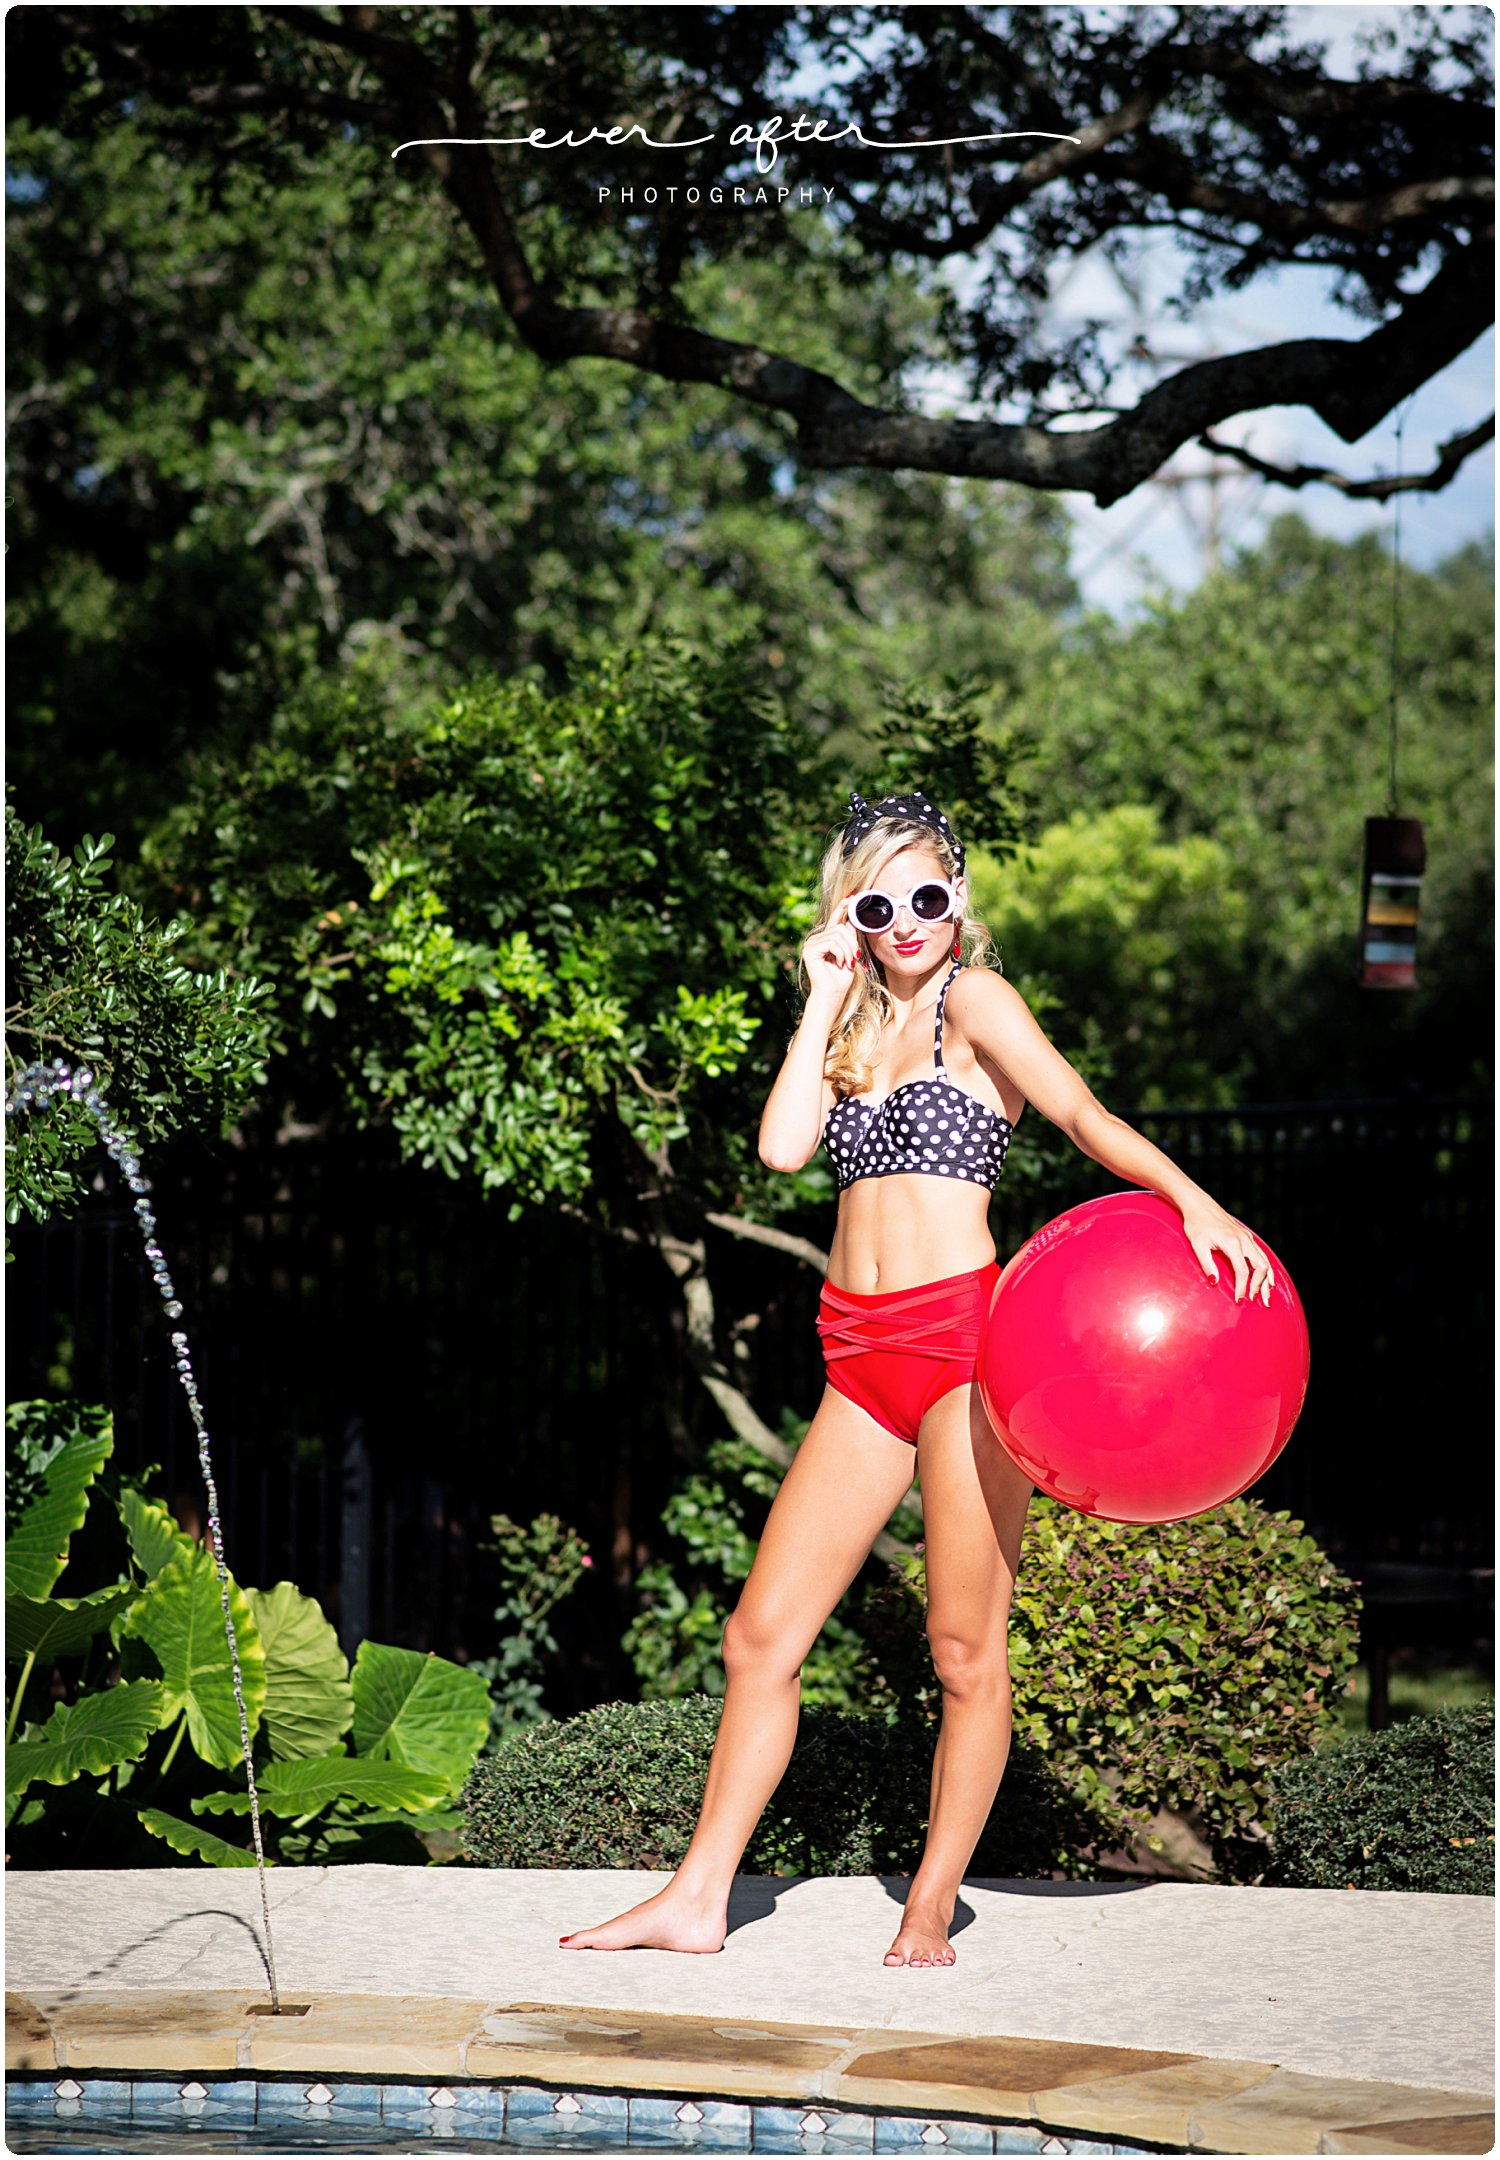 Ever After Photography | san antonio senior portraits, san antonio senior pictures, senior pics, best senior portraits, everafter.photography, leah godfredson, styled session, 50's shoot, poolside,ever after senior model team, class of 2017